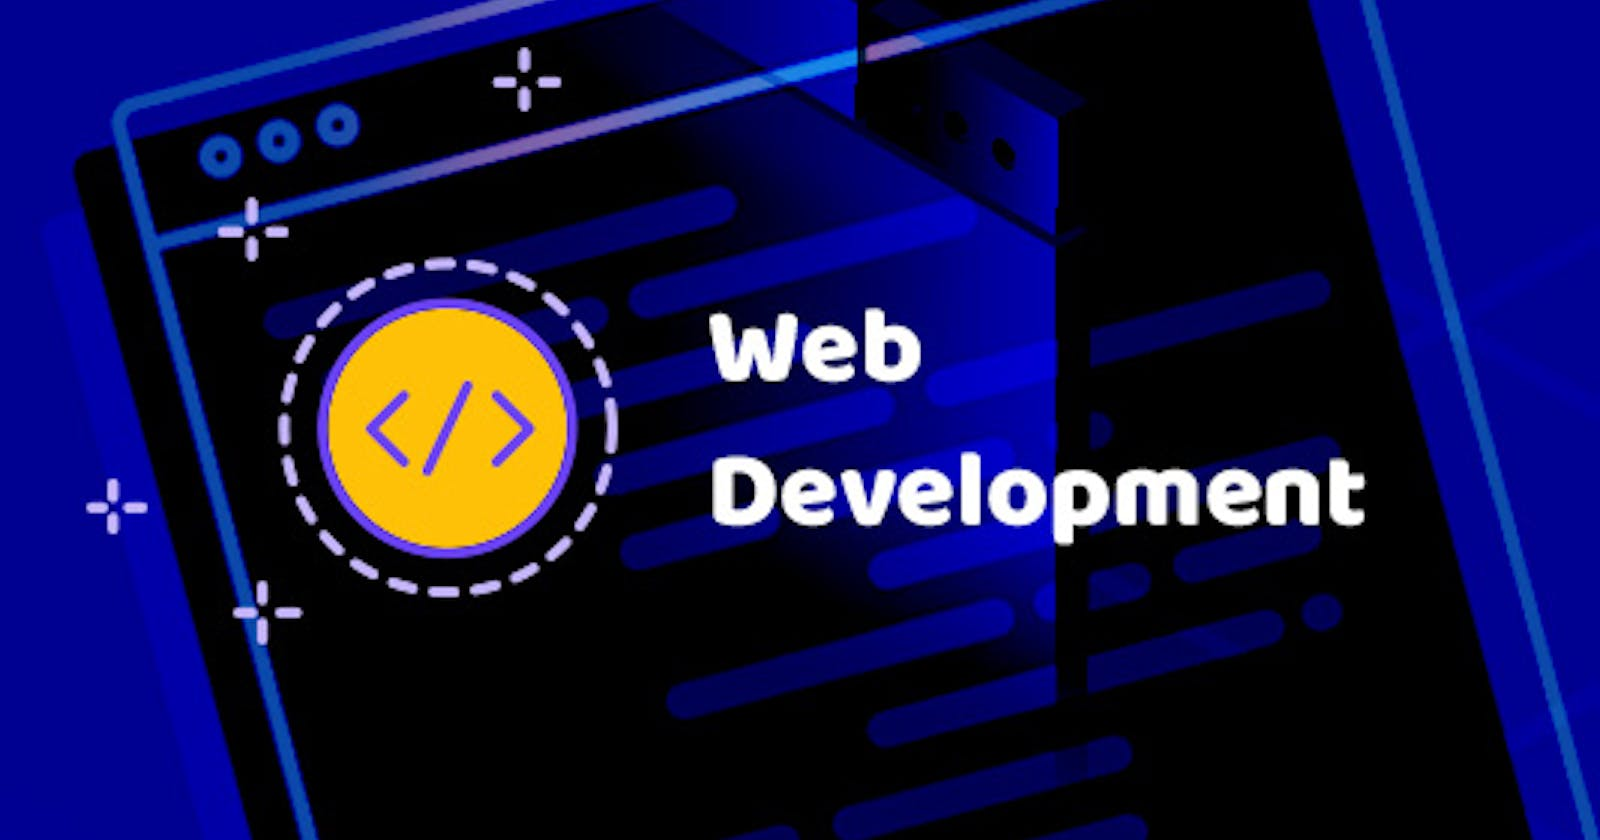 Best Resources To Learn Web Development